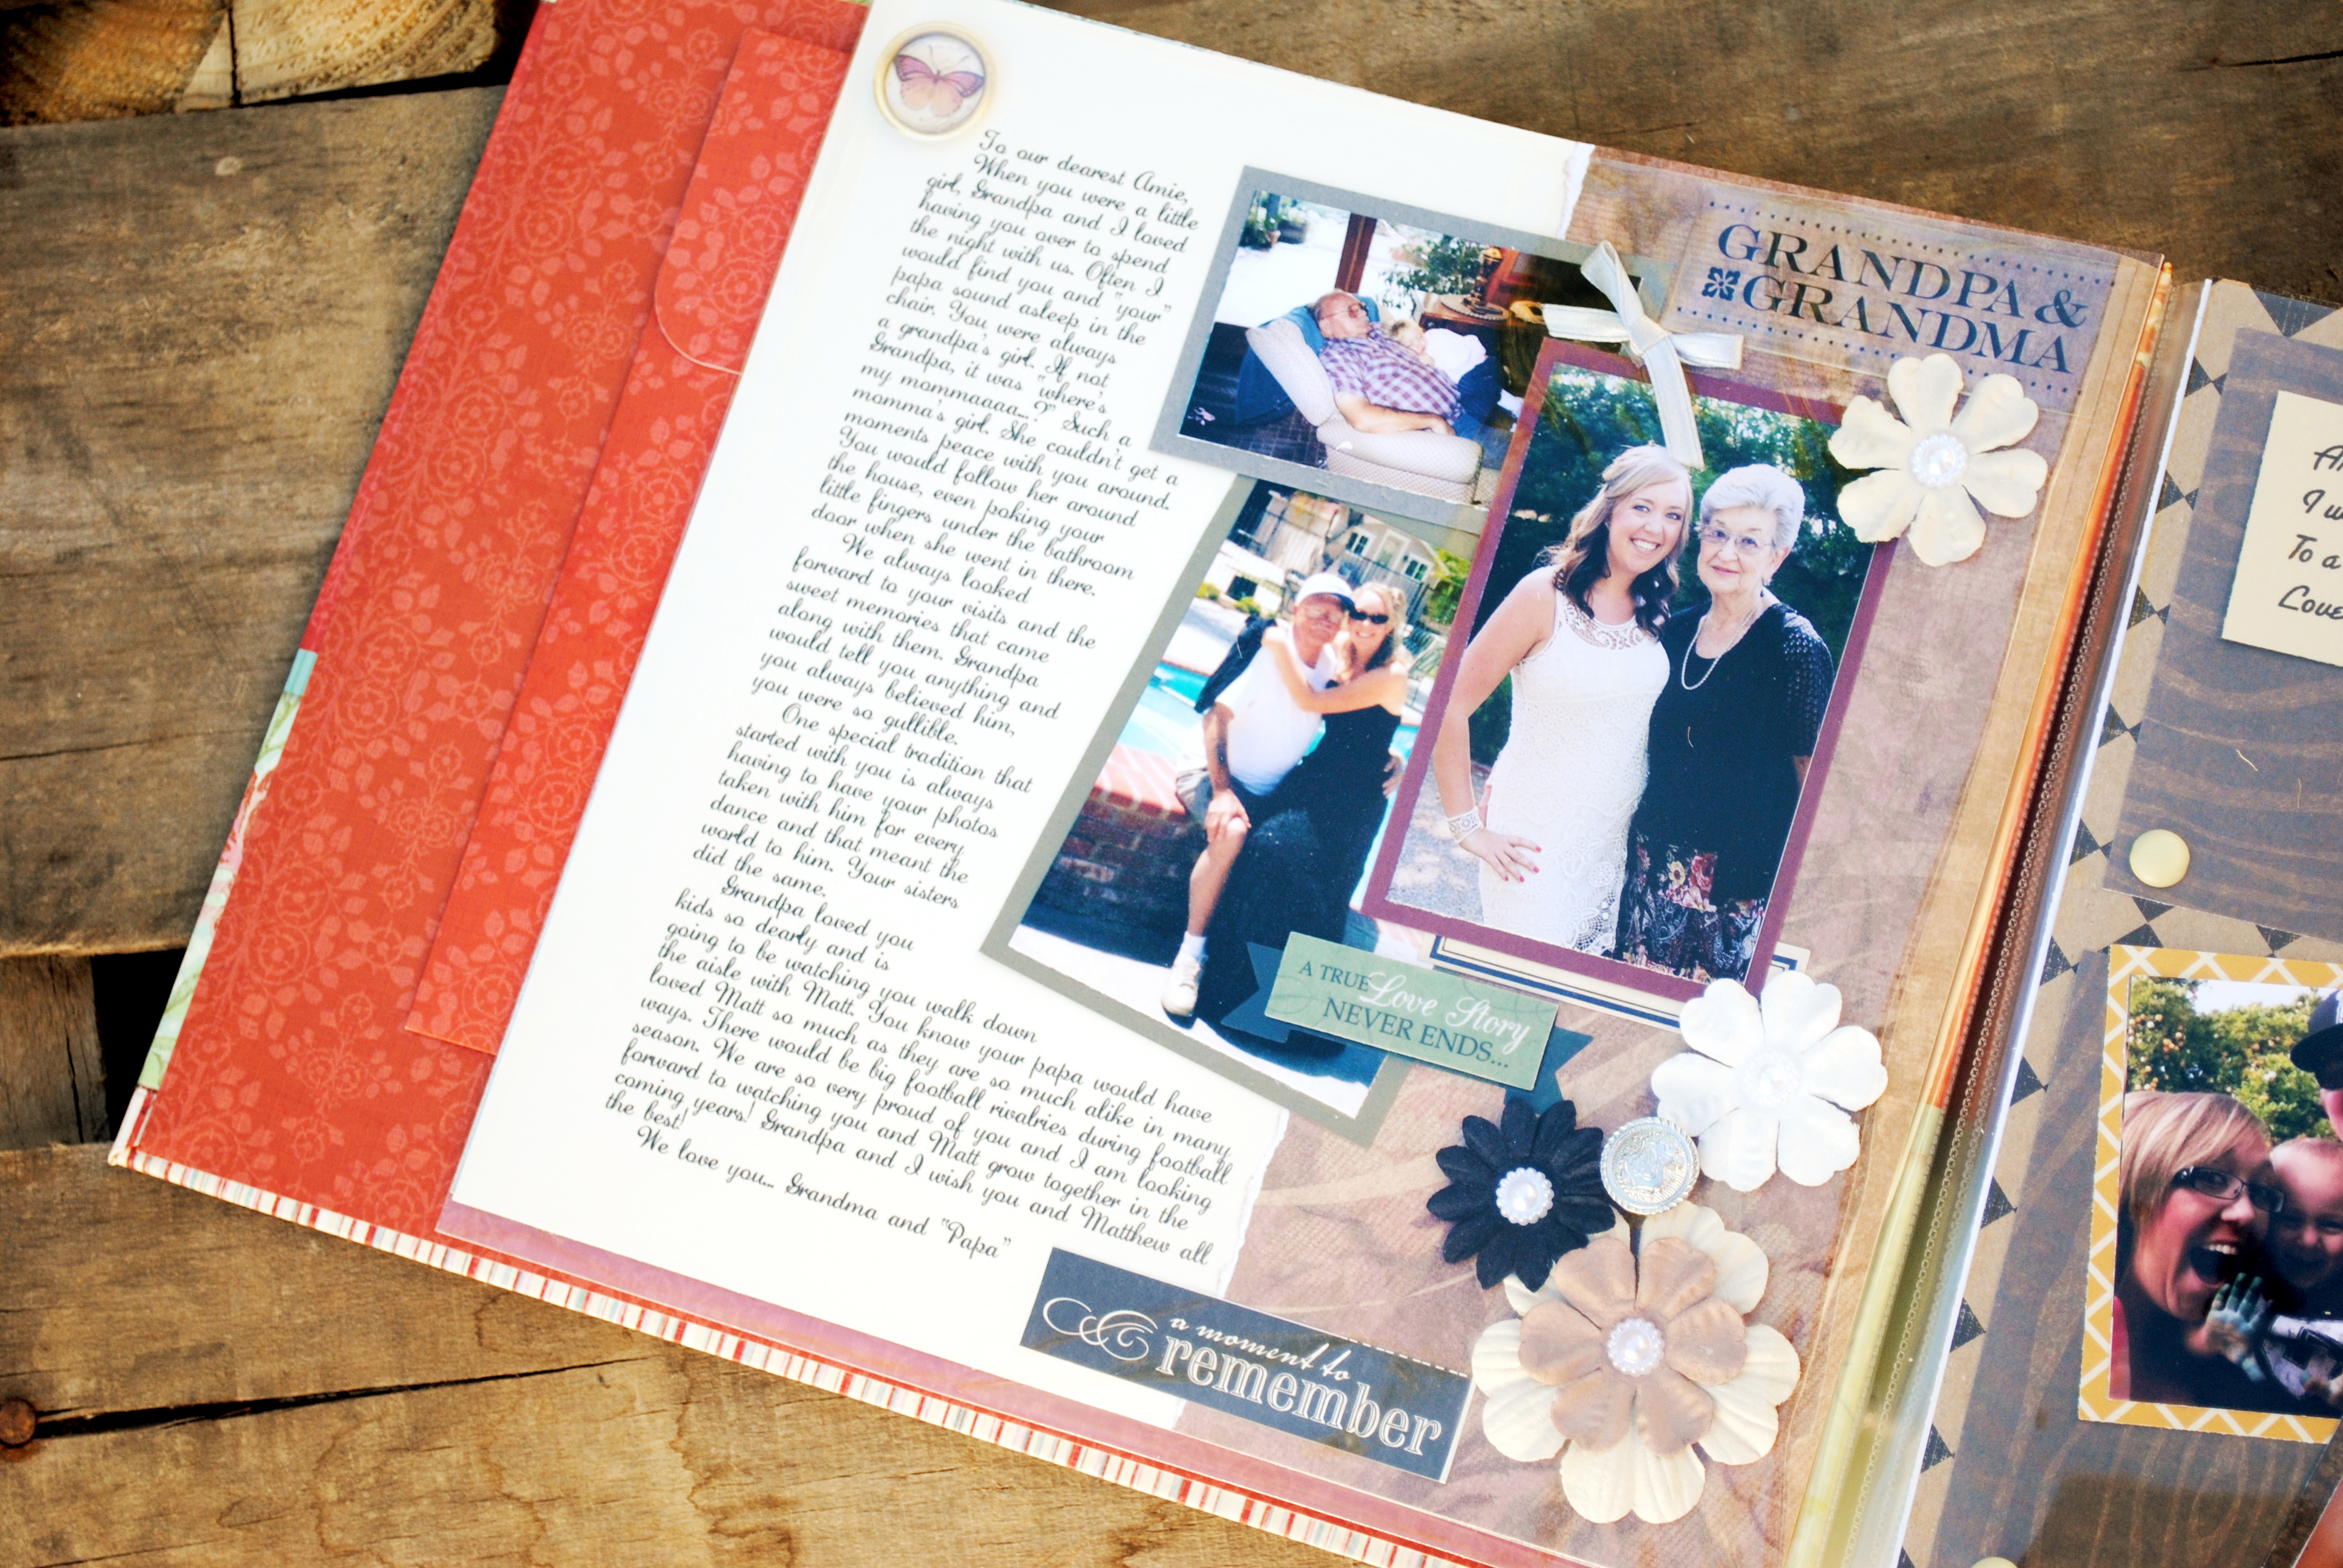 Gift for the bride letter scrapbook_0999 gift for the bride letter scrapbook_0001